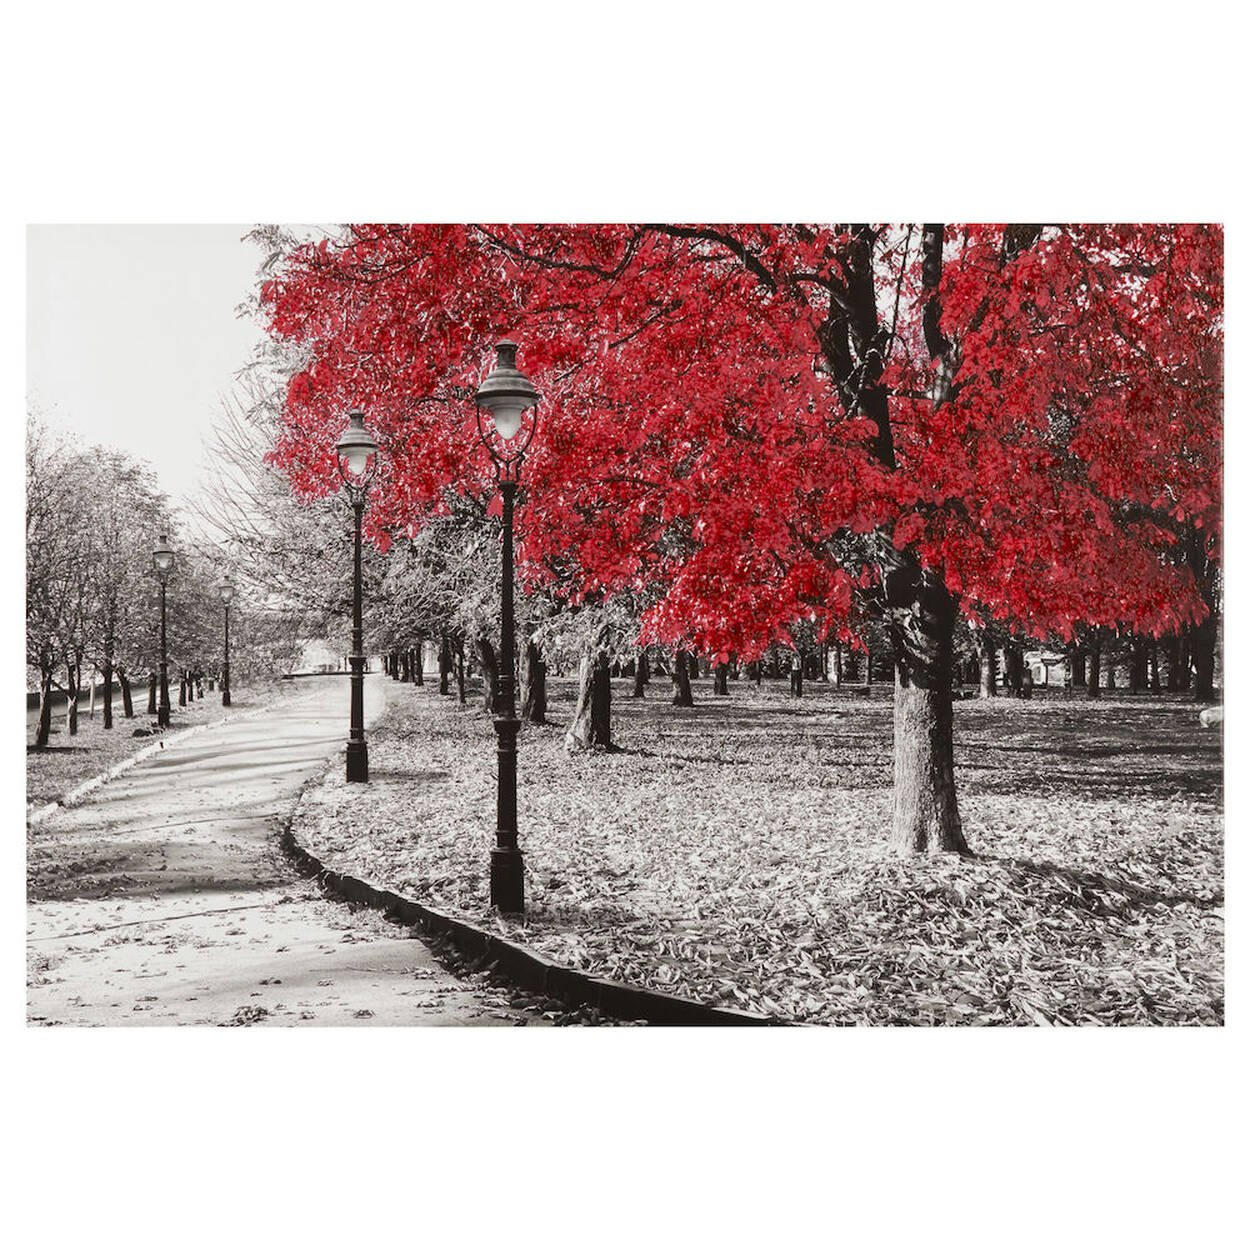 Trees in Park Printed Canvas with Gel Embellishment